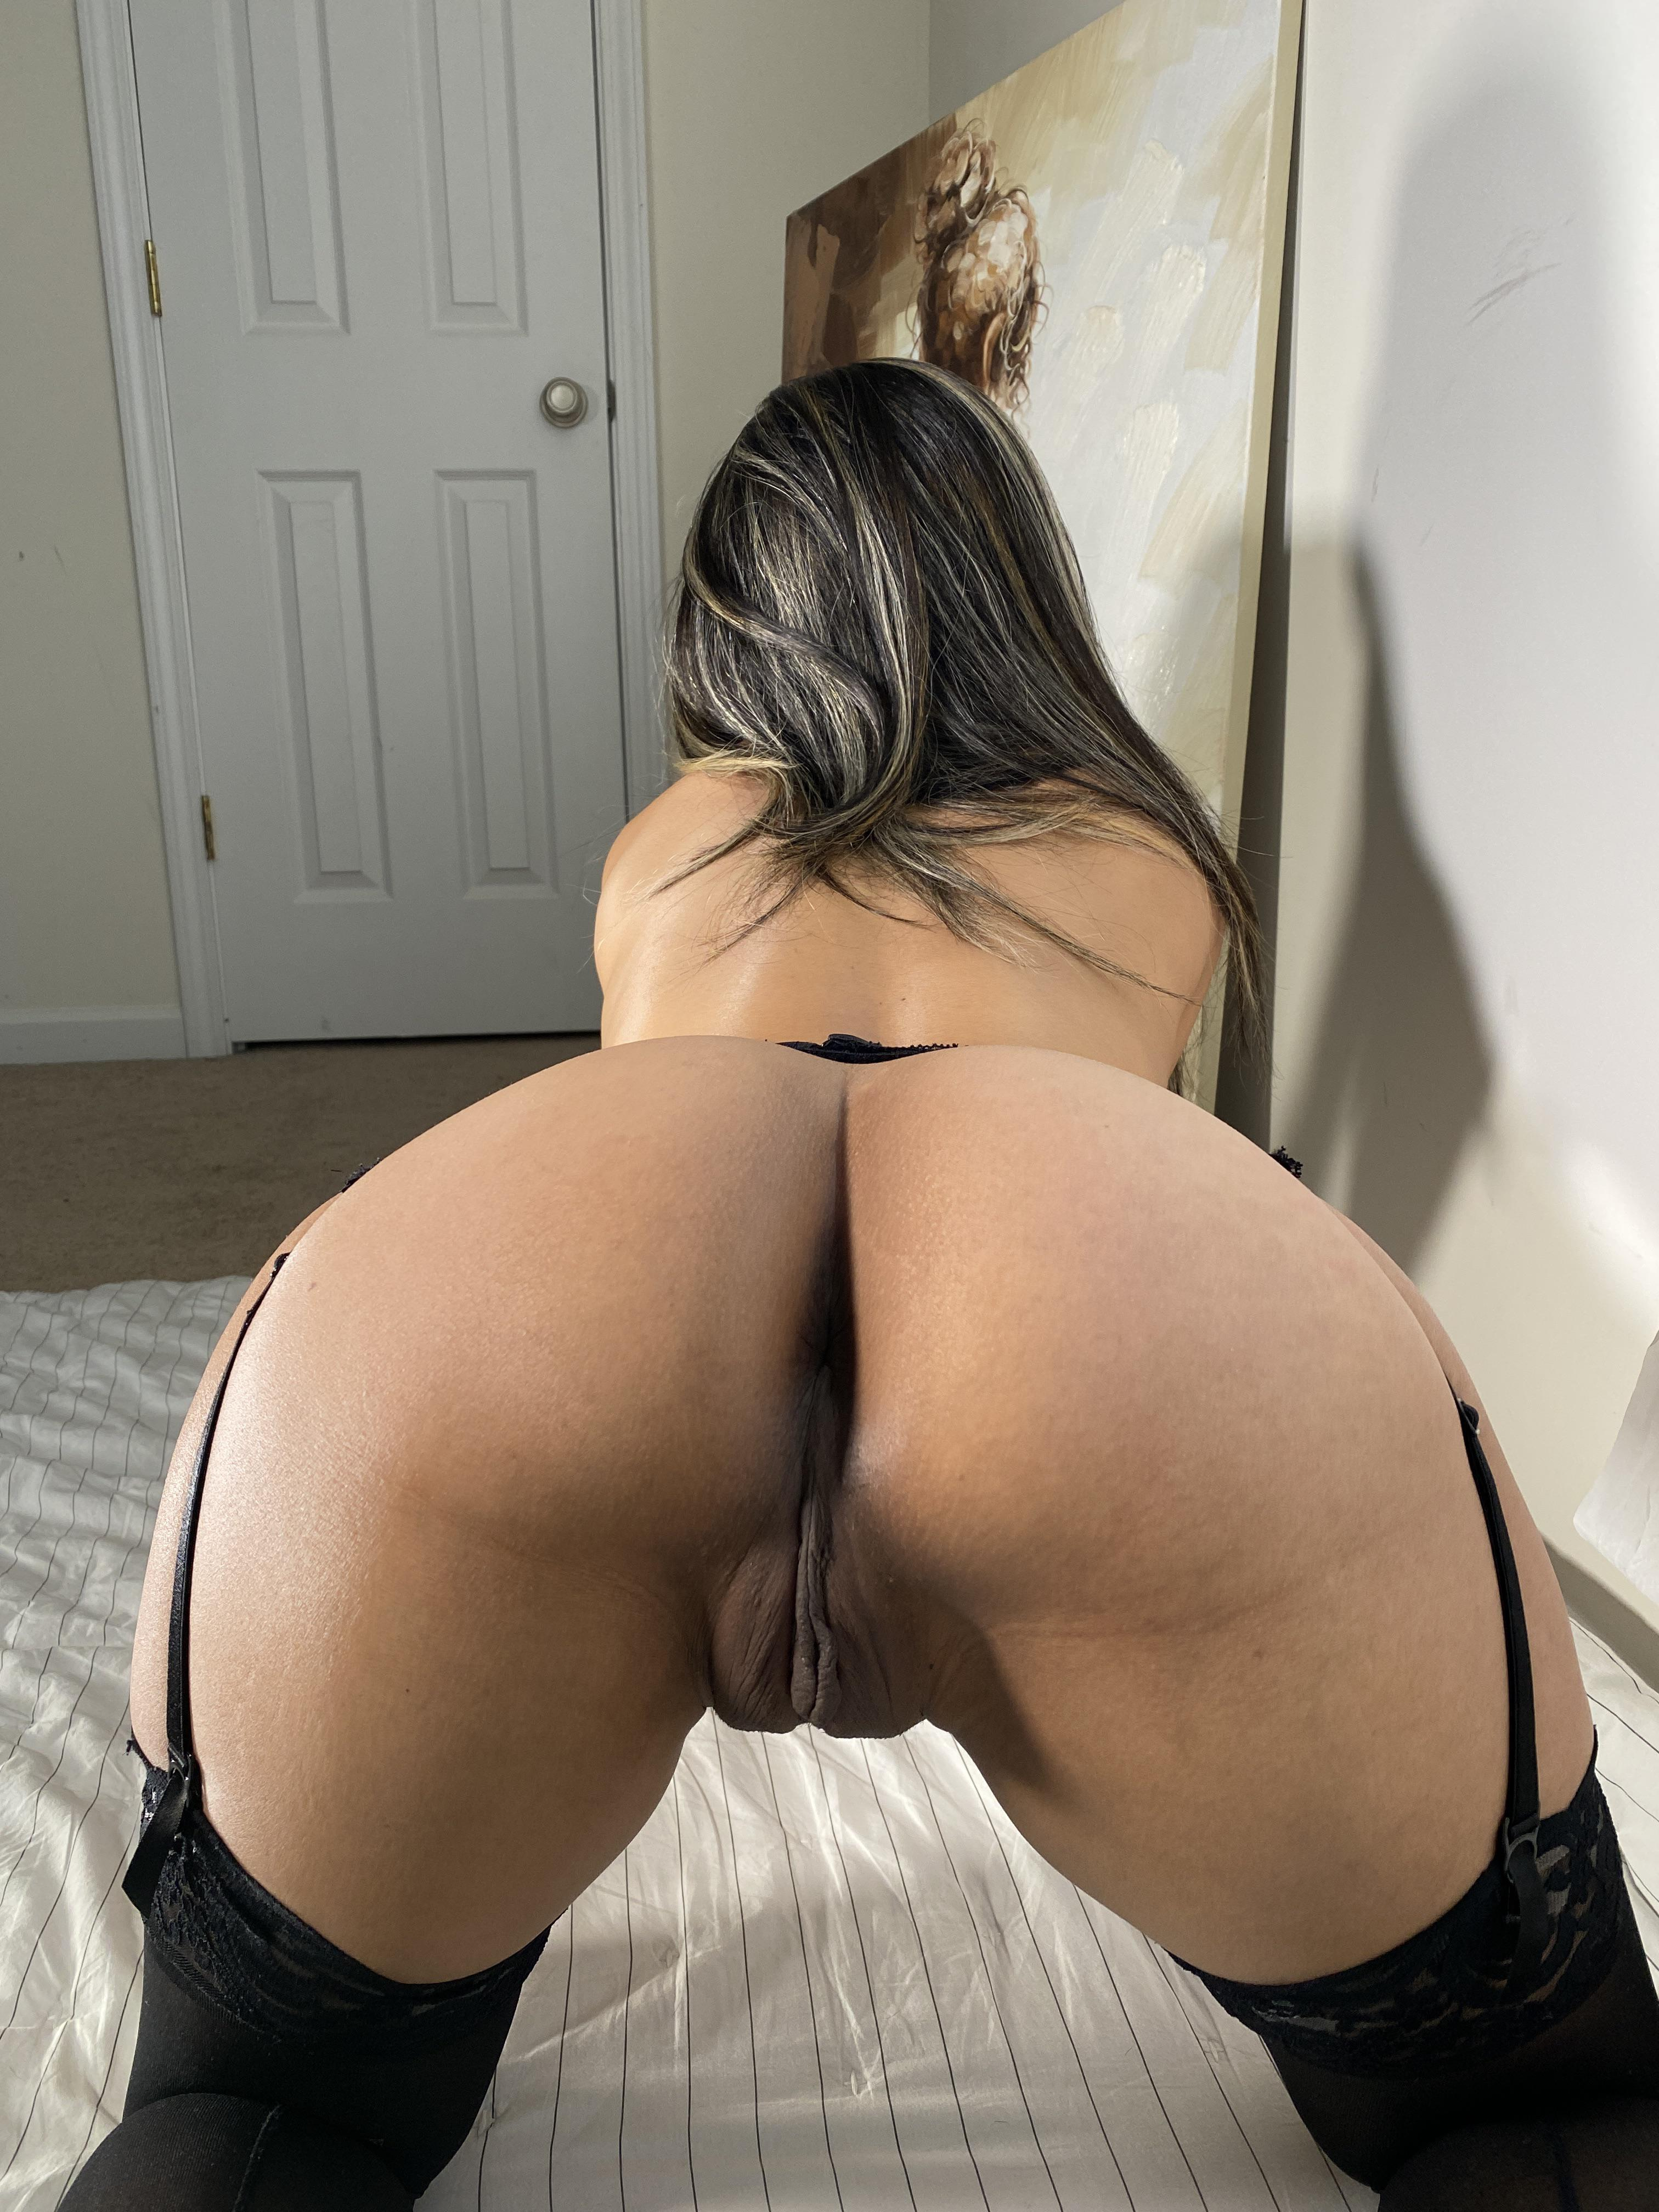 One of our naked asian pics called My phat ass need to get fuck, would you help me?